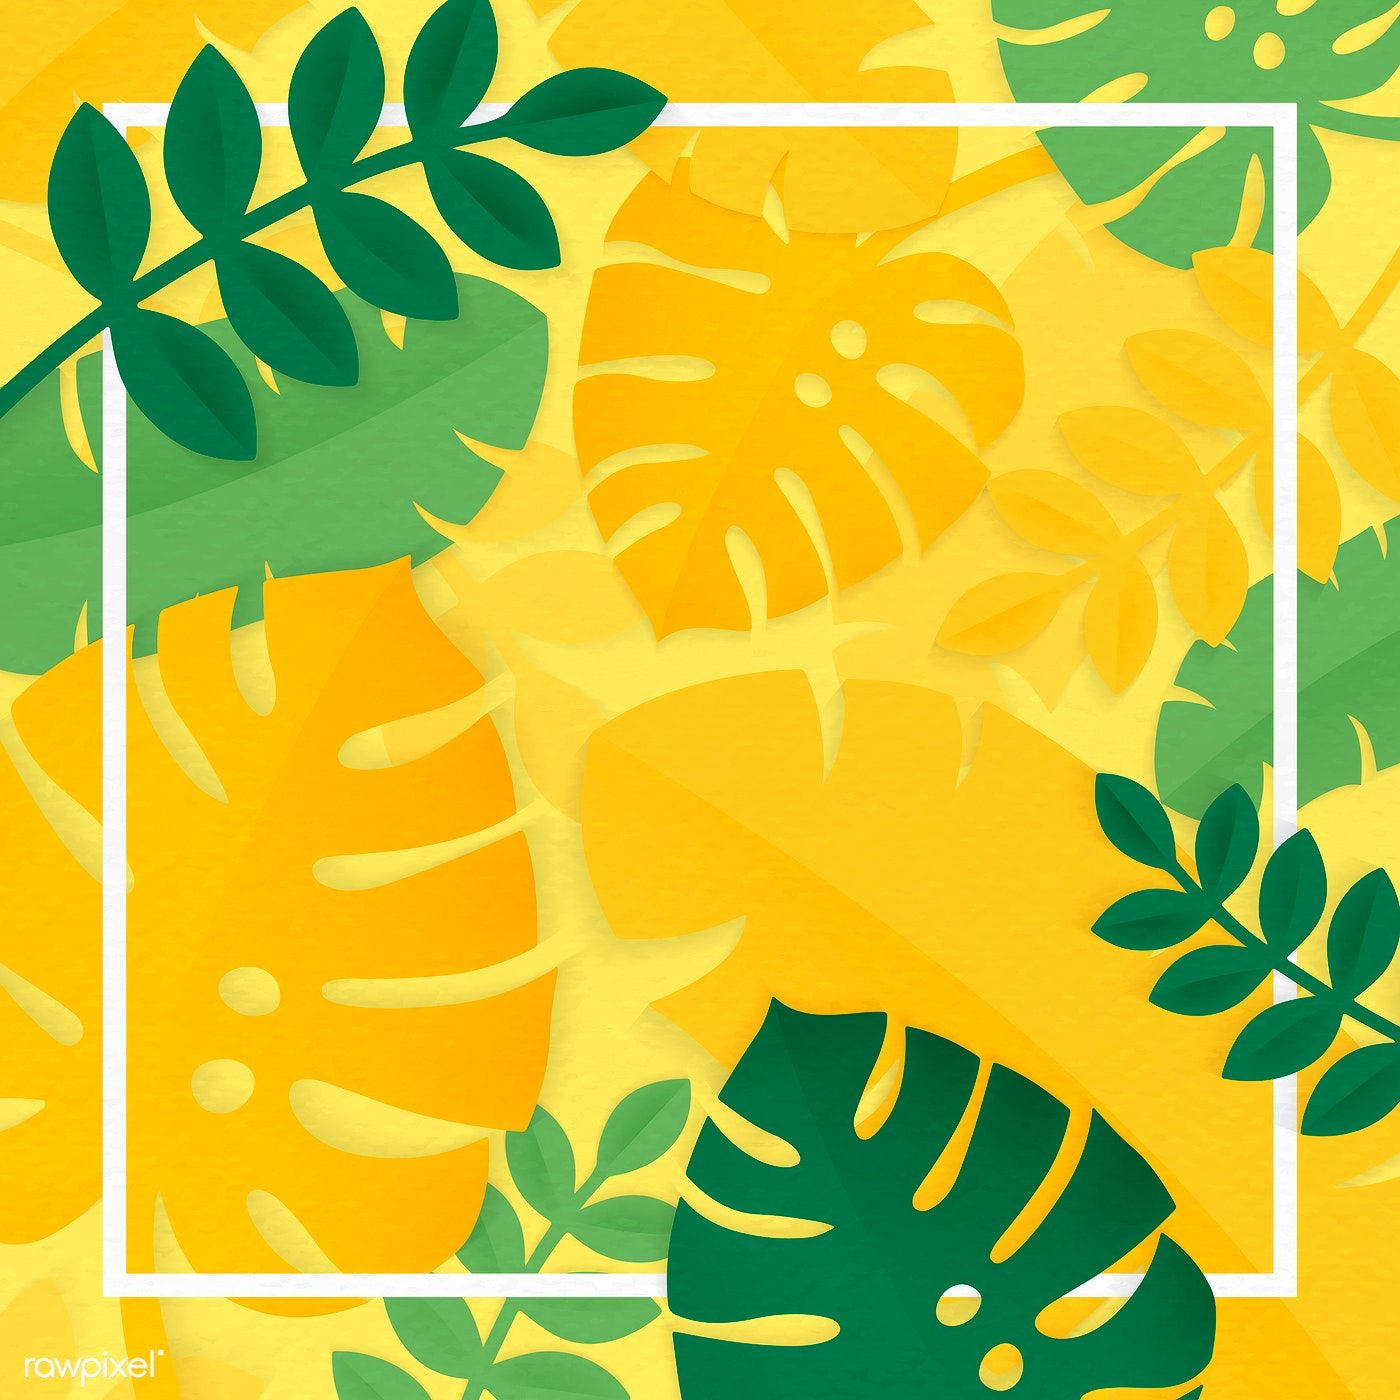 Download Premium Vector Of White Sqaure Frame On Yellow Tropical Leaves Vector Background Pattern Tropical Leaves Tropical Leaves Pattern Tropical palm tree leaves background. yellow tropical leaves